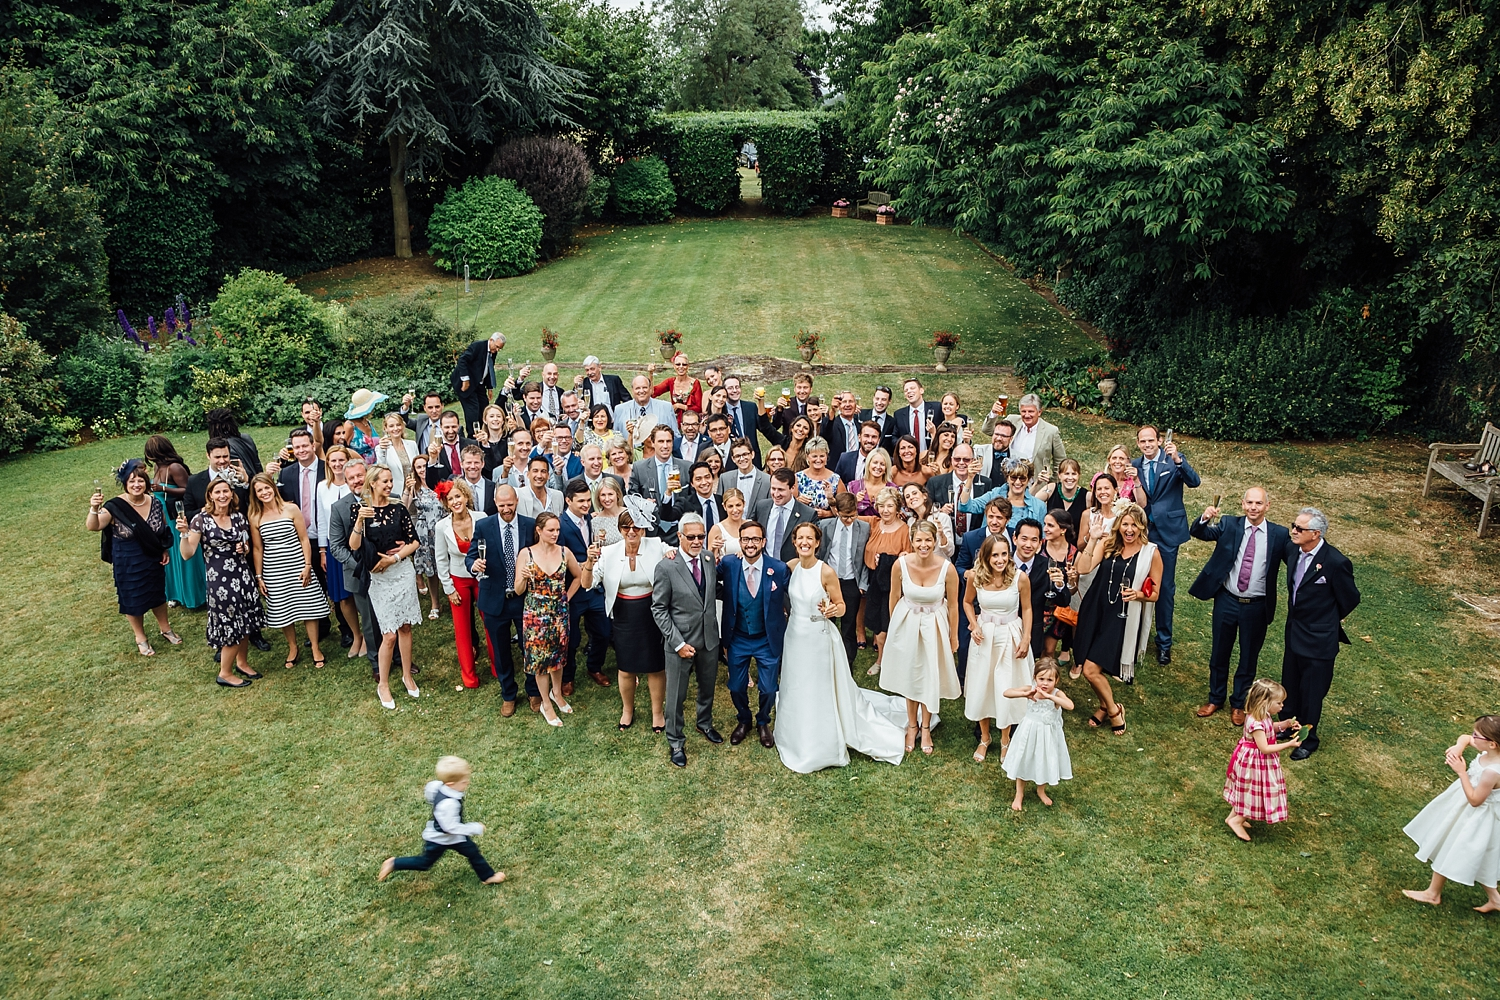 alexvictor-blog-natural-fun-relaxed-documentary-charlotte-jopling-wedding-photography-northamptonshire-home-garden-country-summer-45.jpg